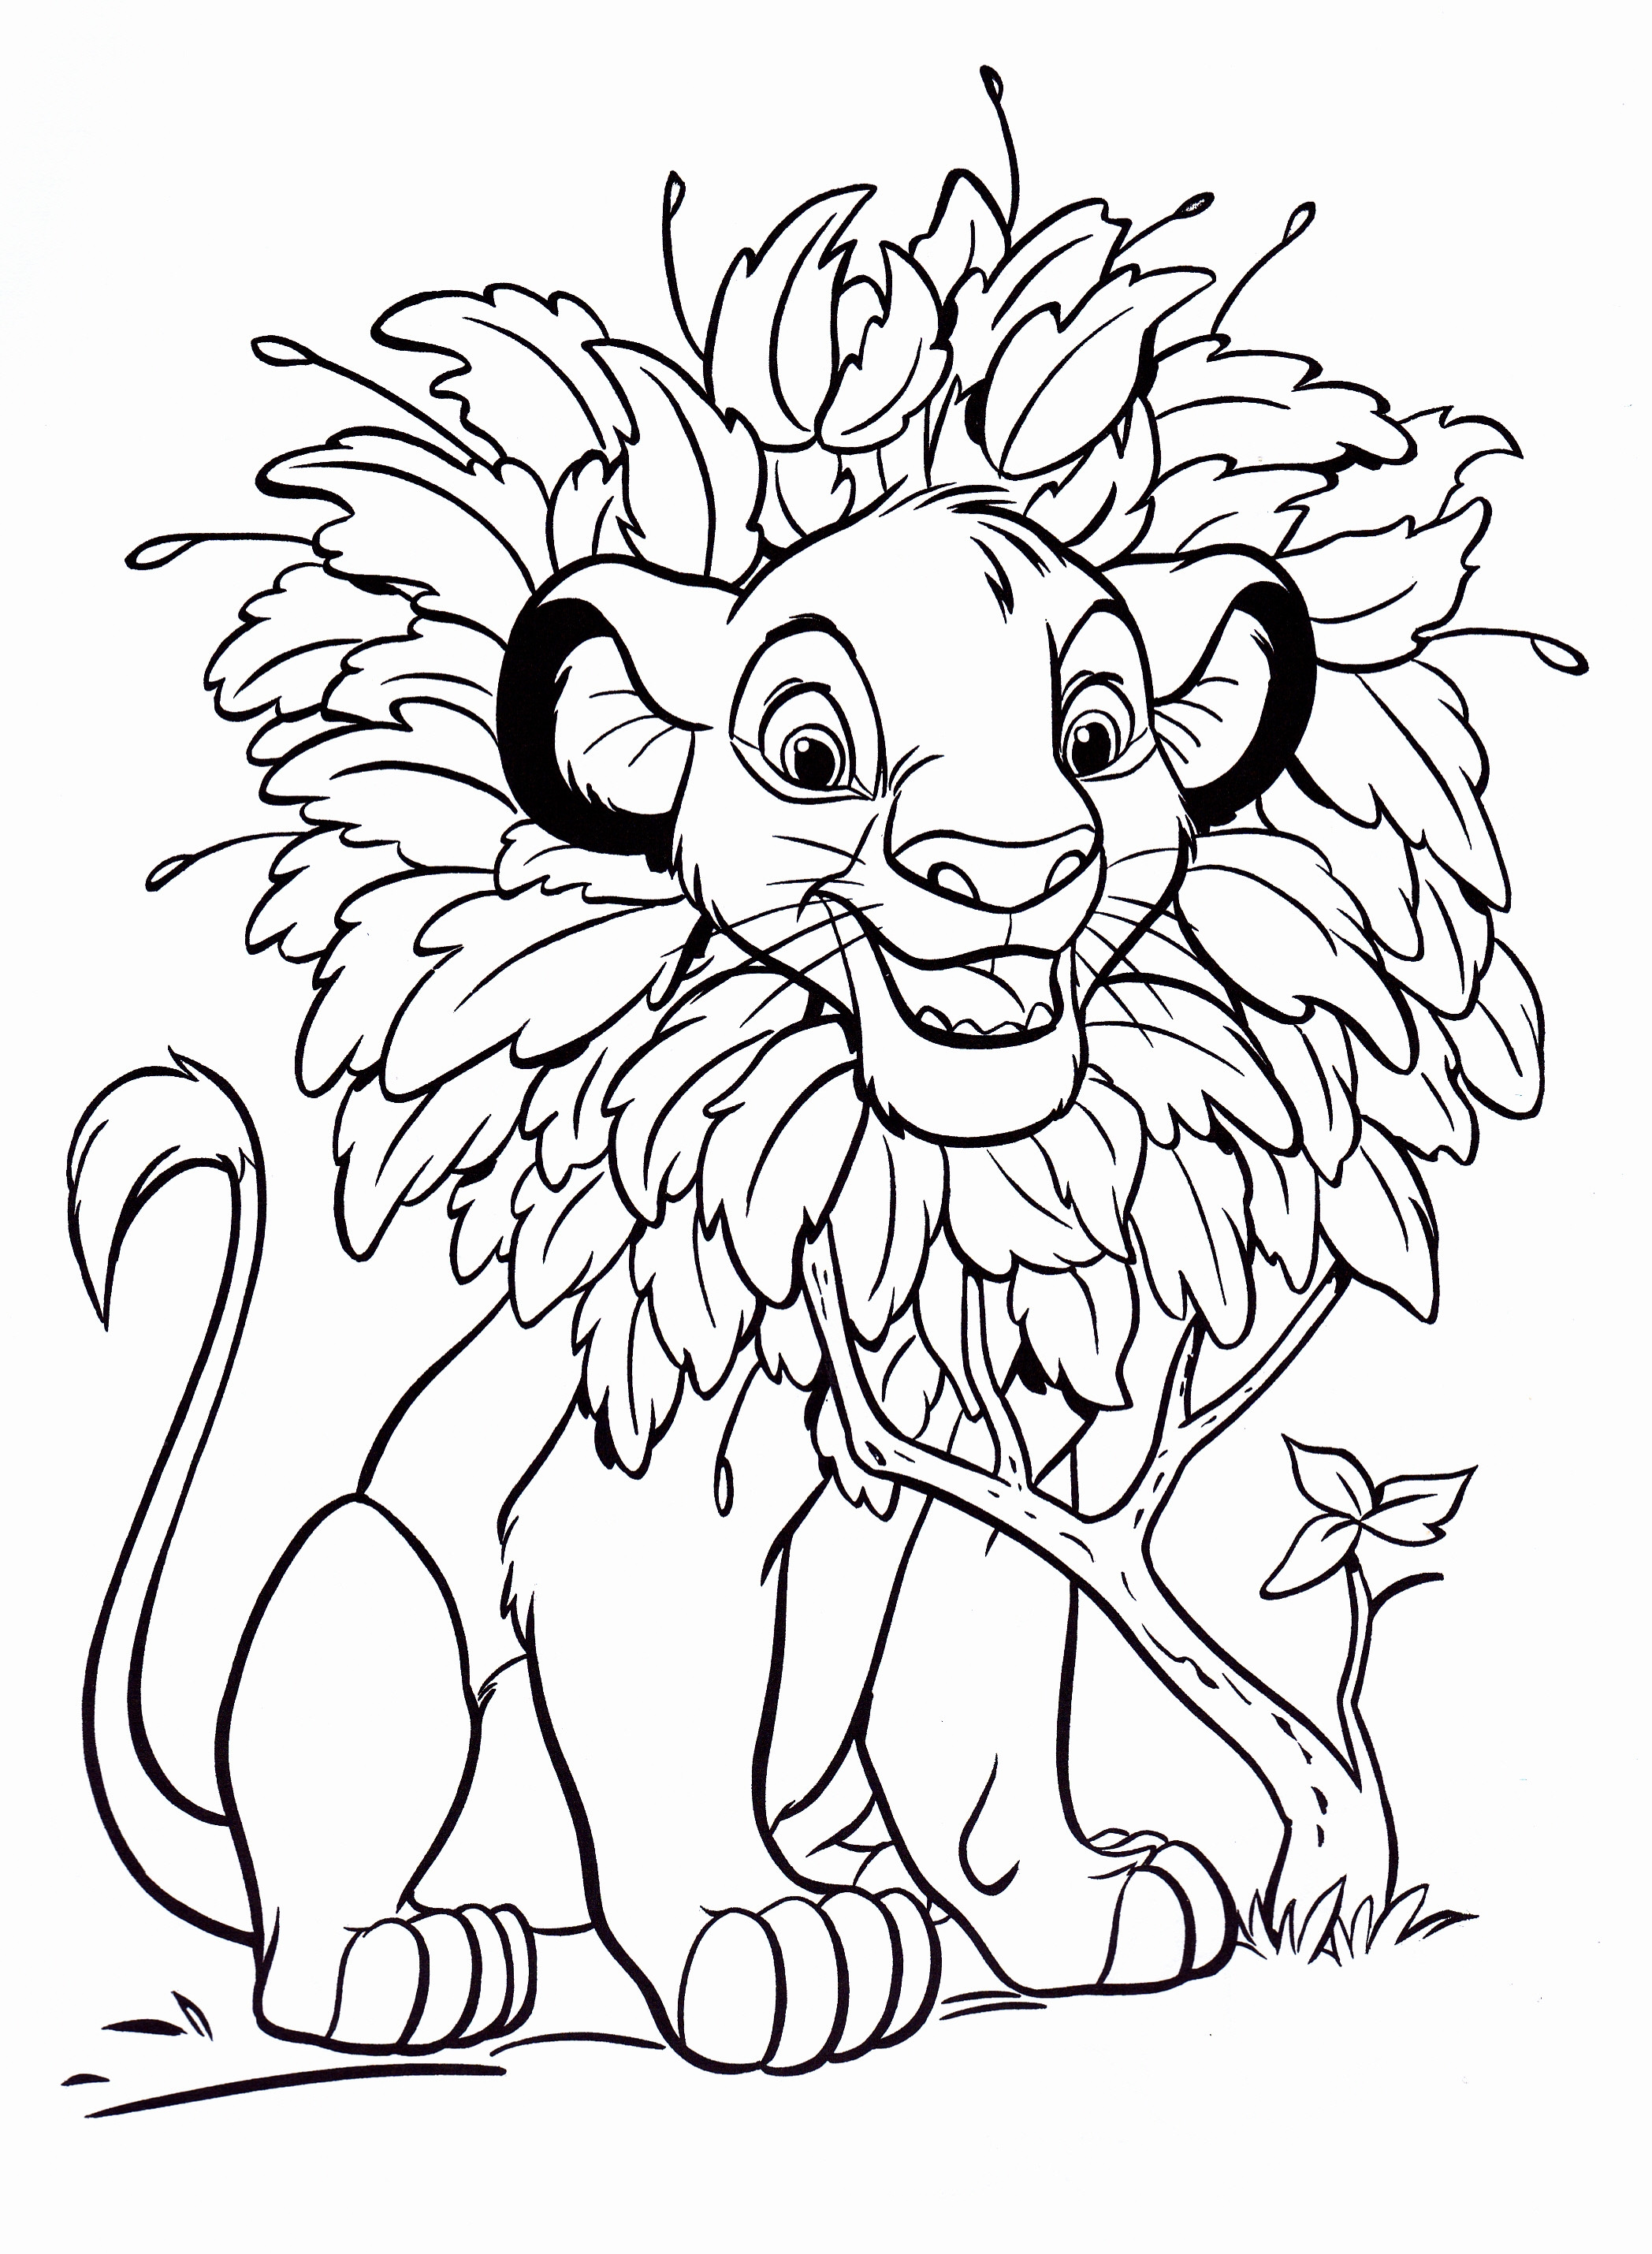 Kids Free Coloring Sheets  Free Printable Simba Coloring Pages For Kids